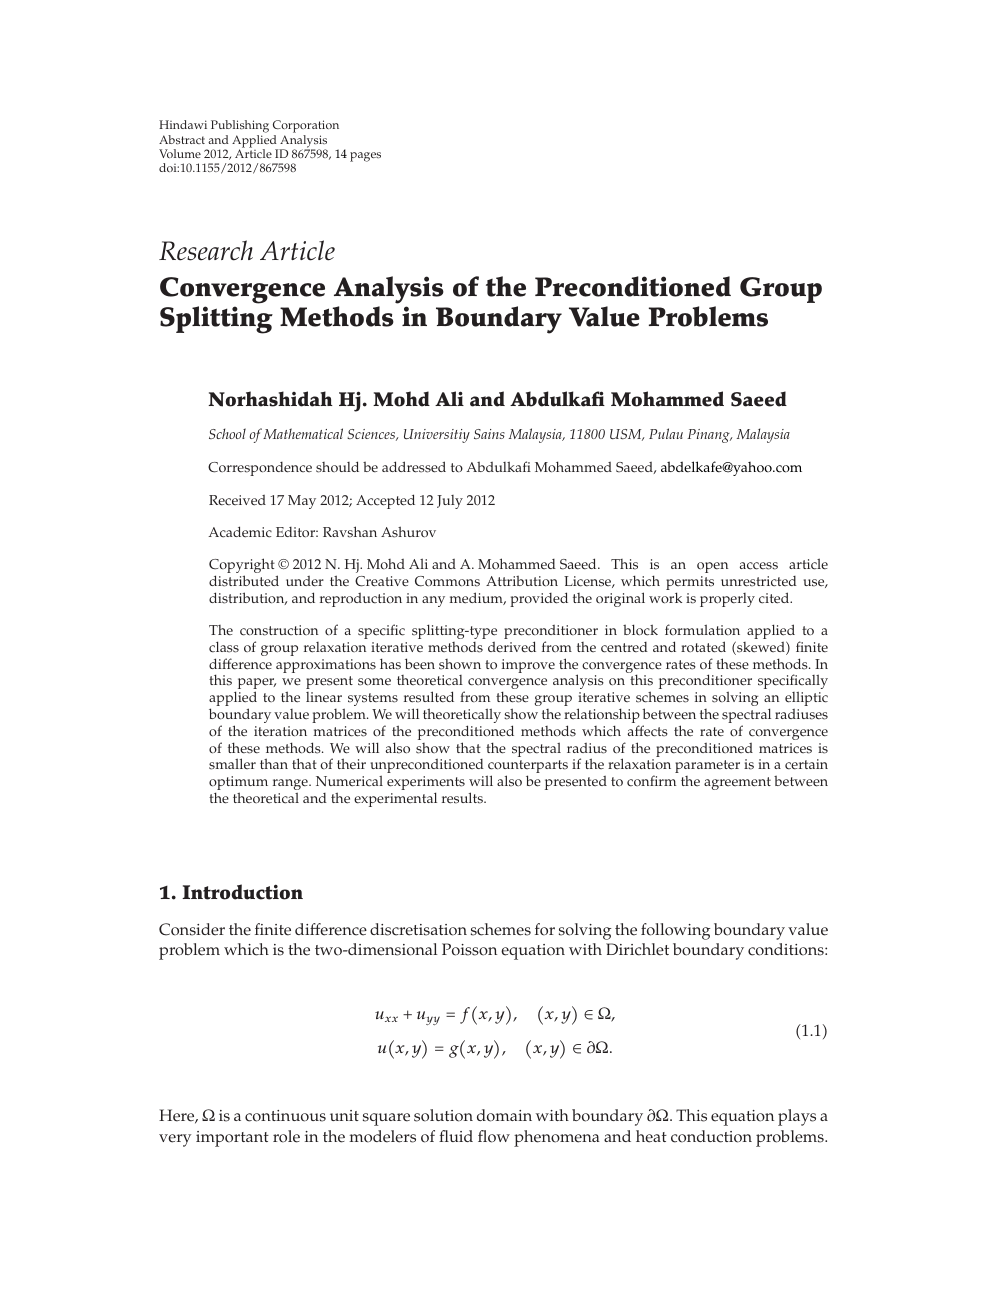 Convergence Analysis of the Preconditioned Group Splitting